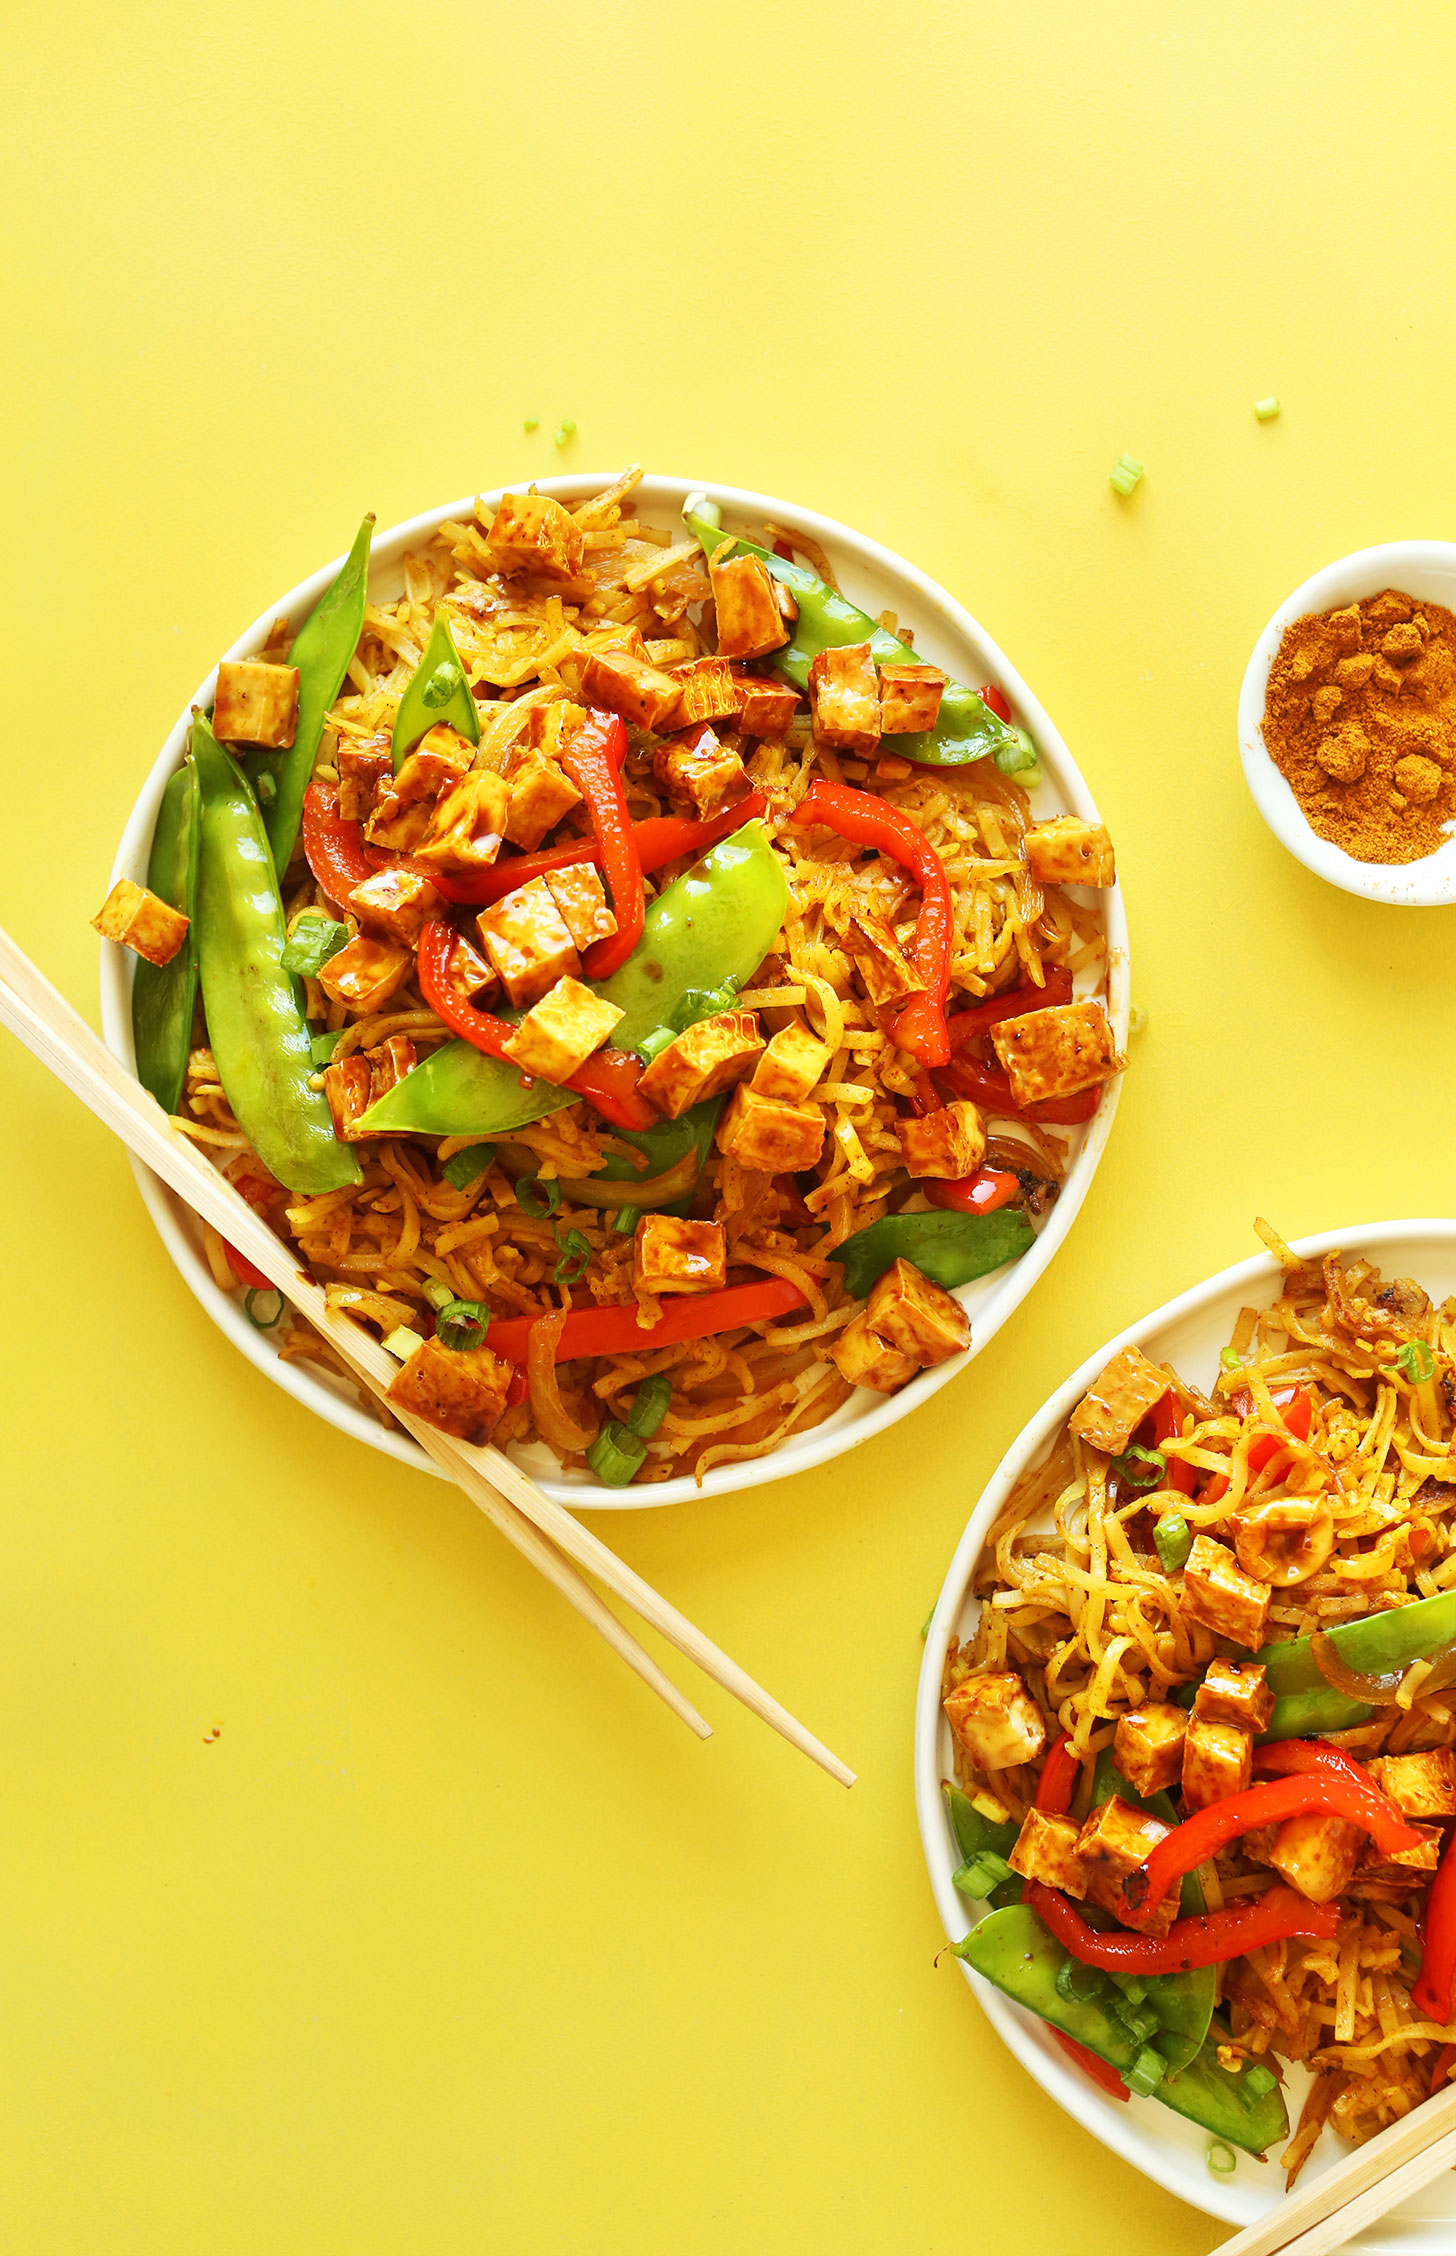 Vegan singapore noodles minimalist baker recipes dinner plates piled high with delicious vegan singapore noodles for a flavorful simple meal forumfinder Choice Image